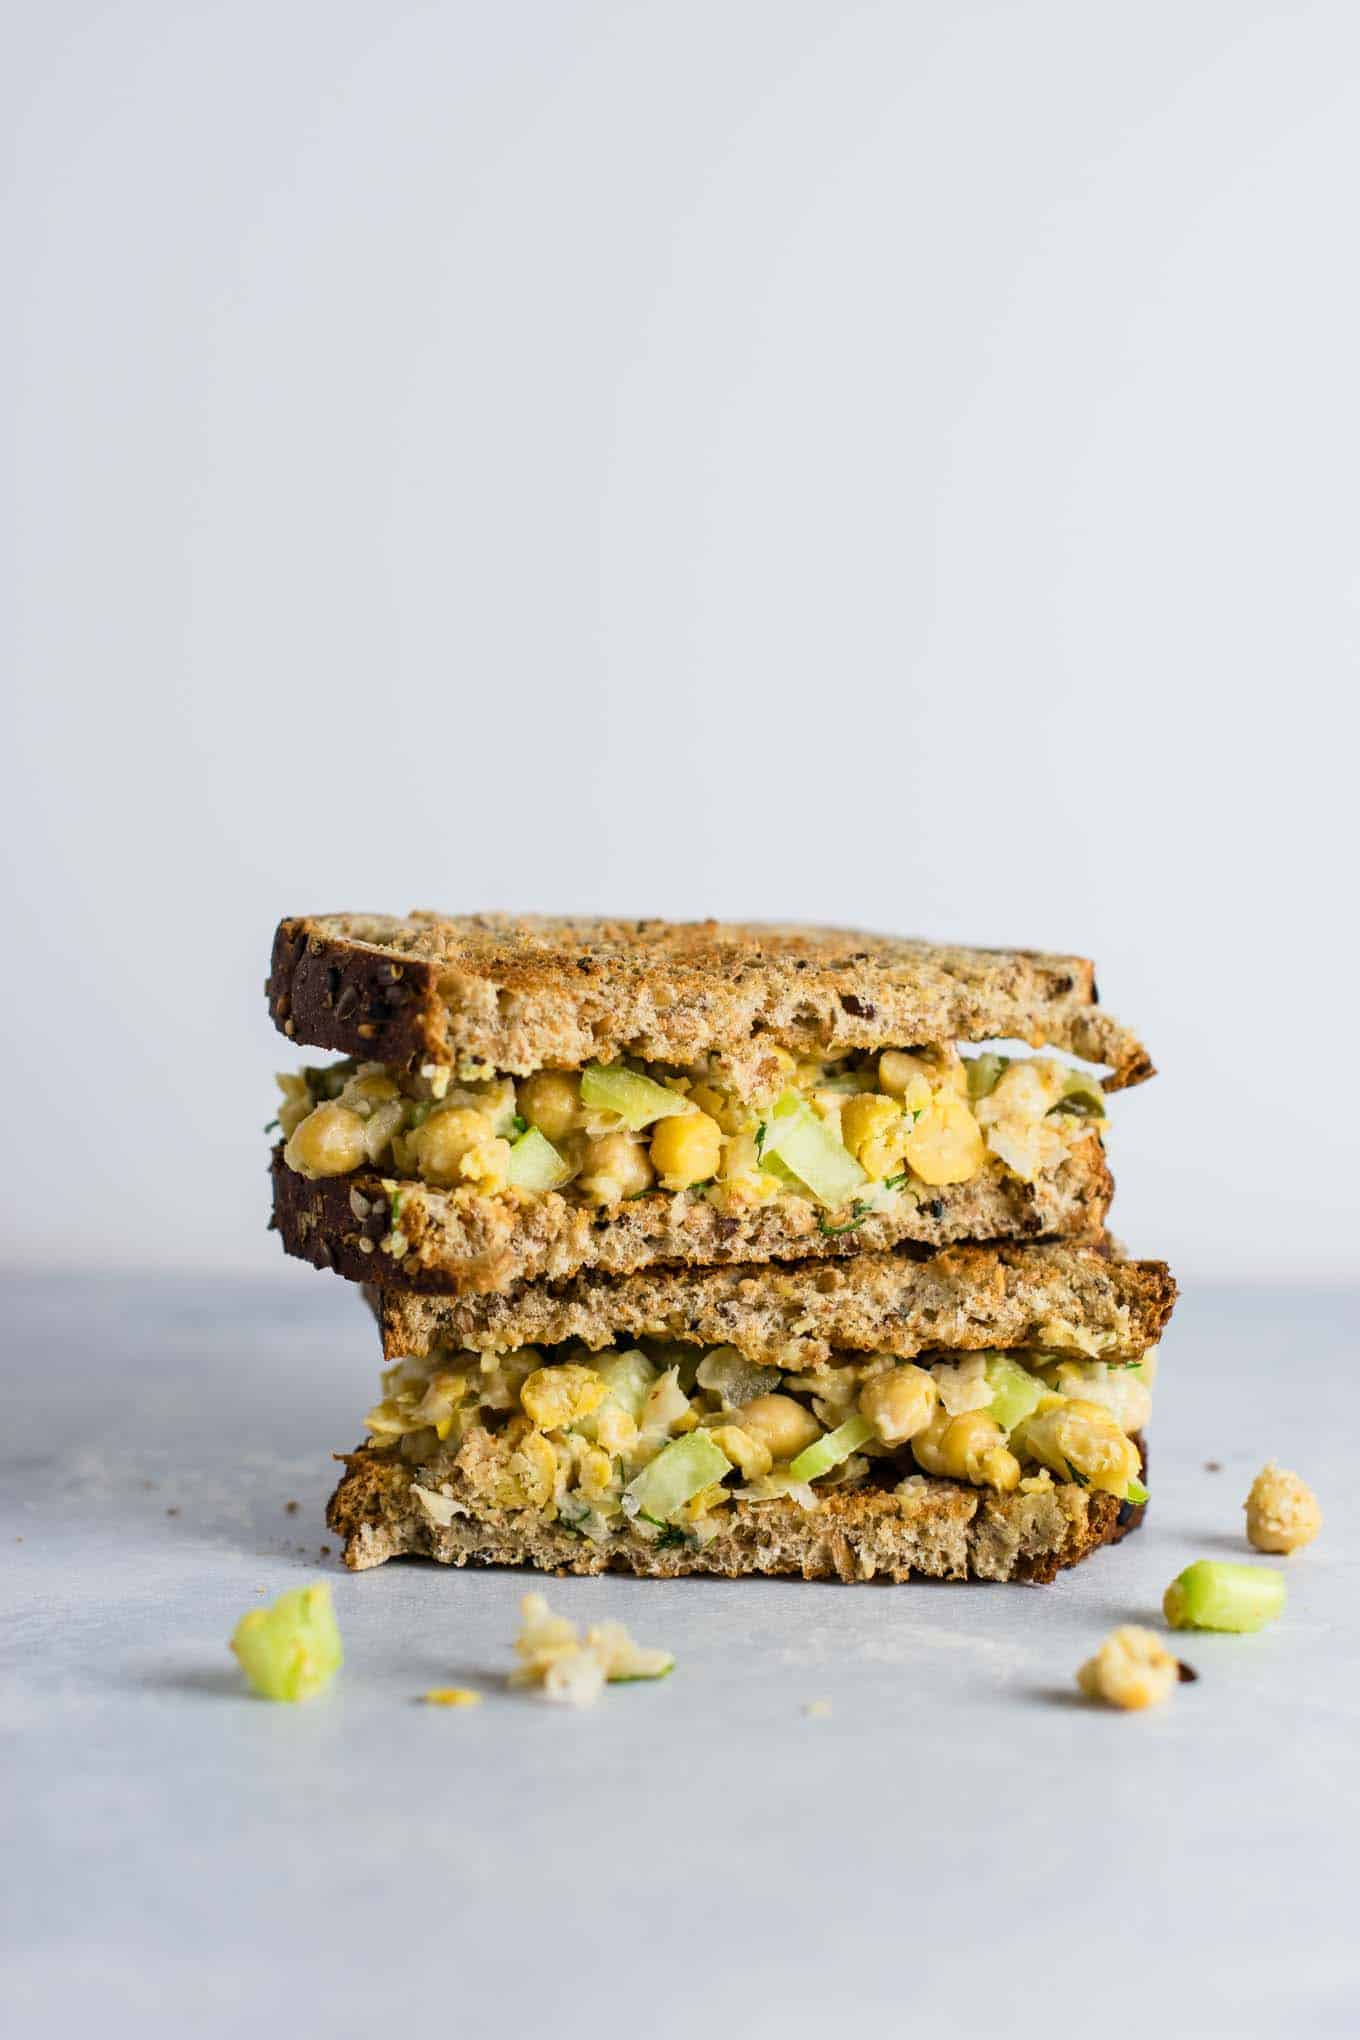 The BEST chickpea salad sandwich recipe. Minimal ingredients and so much flavor! I love this for easy lunches! #chickpeasaladsandwich #chickpea #vegan #mealprep